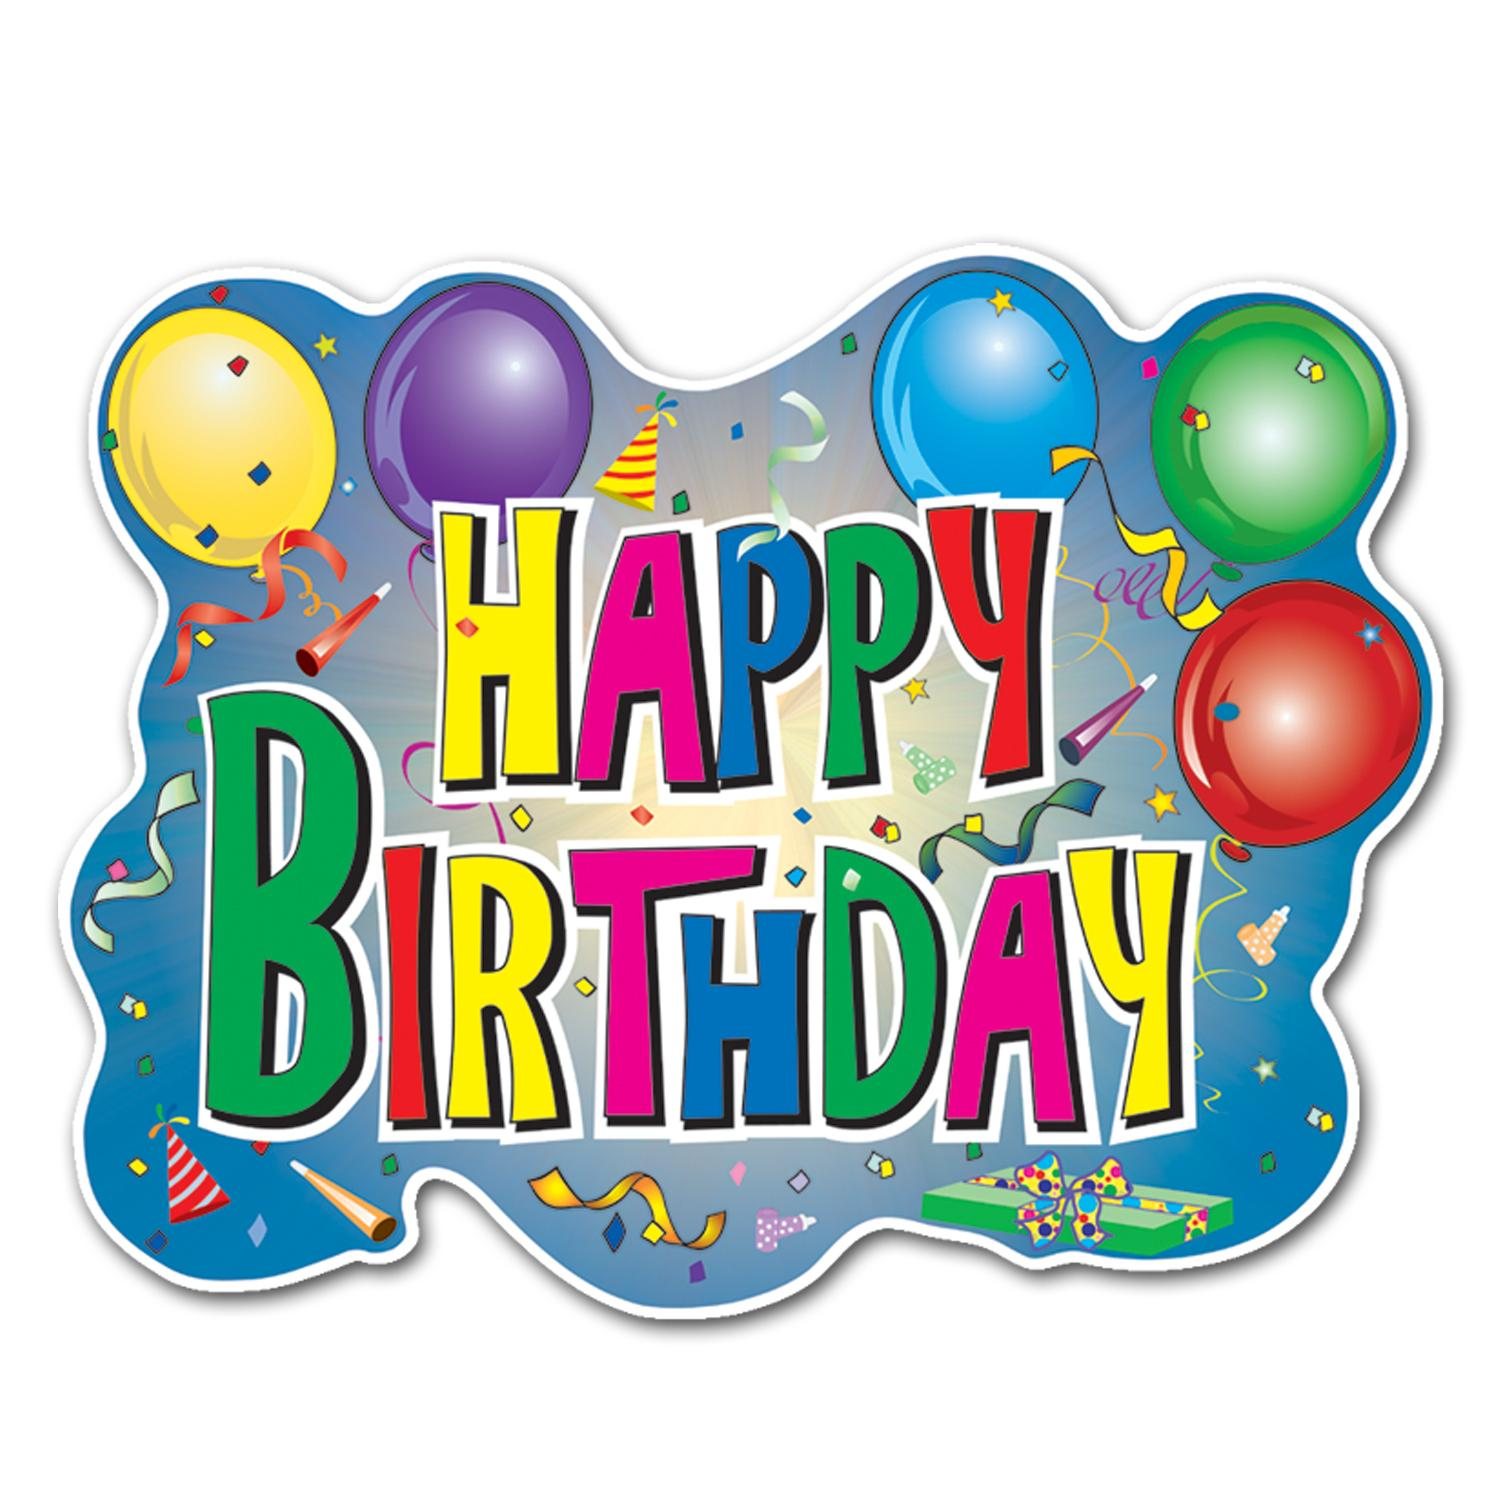 Birthday Printable Images Gallery Category Page 5 ...